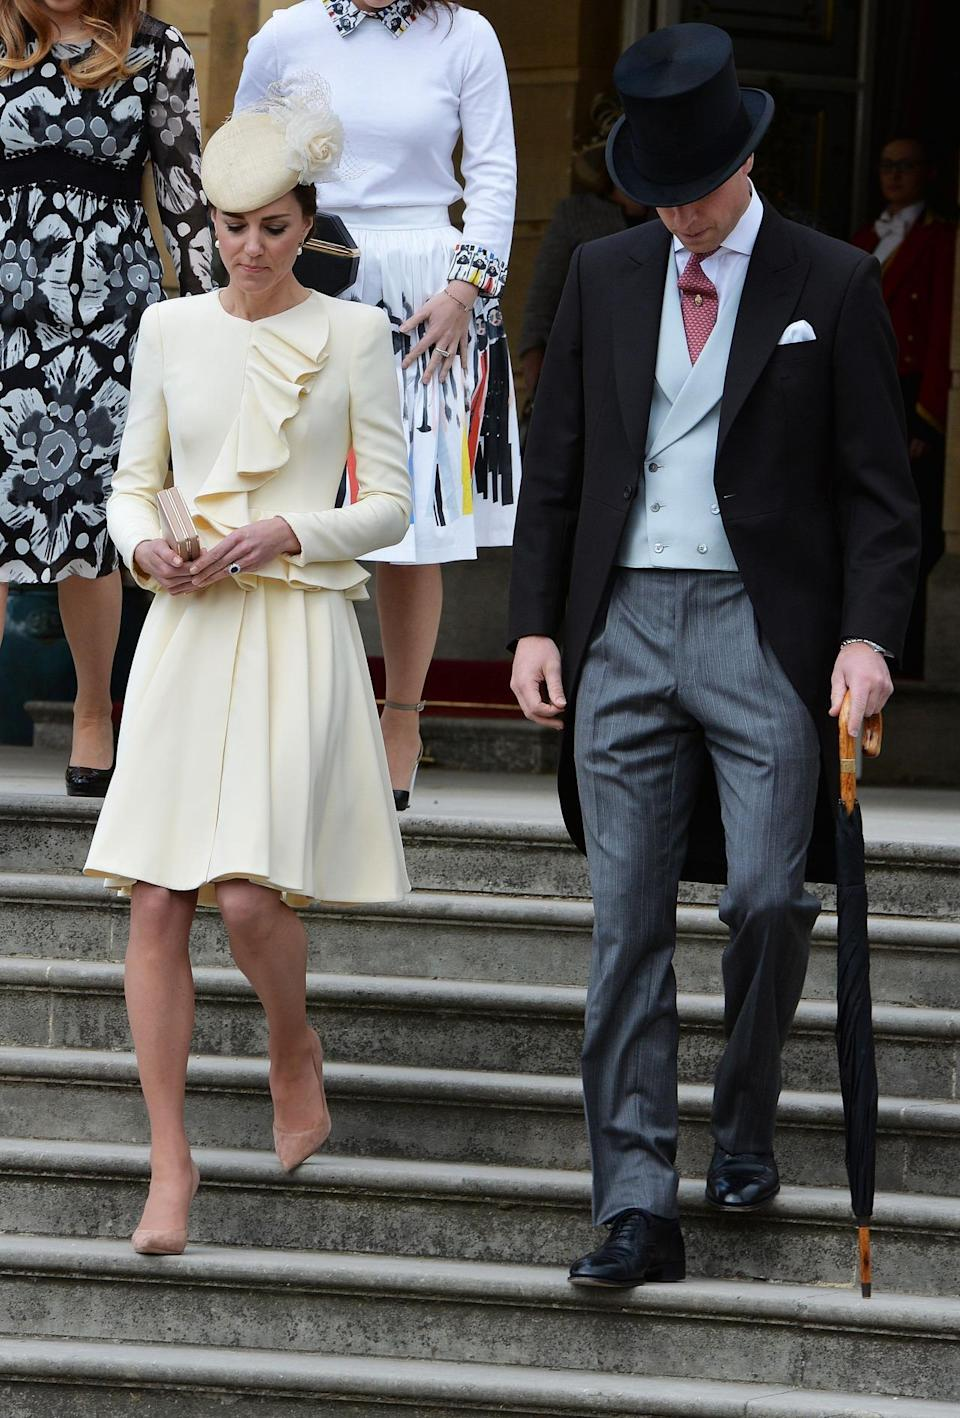 <p>Who wouldn't dream of bespoke Alexander McQueen? Kate lived every woman's fantasy at Buckingham Palace's garden party in a subtle yellow ruffled look taken from the label's SS12 collection.</p><p><i>[Photo: PA]</i></p>